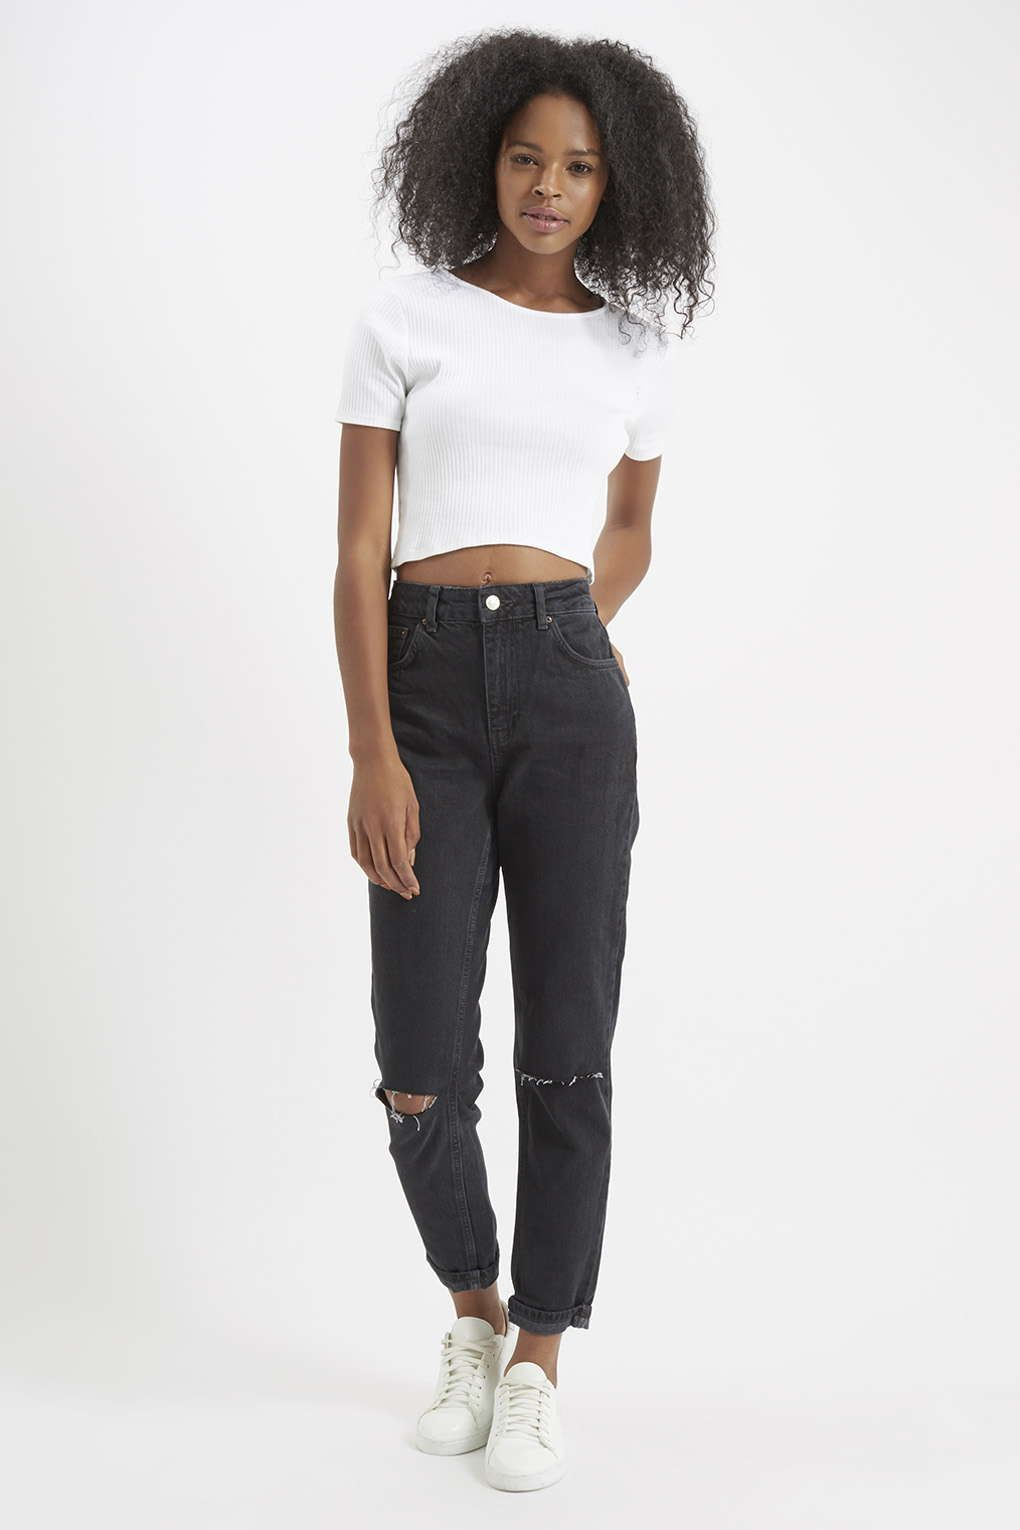 adaa3391c8b MOTO Washed Black Ripped Mom Jeans in 2019 | Outfit ideas | Ripped ...